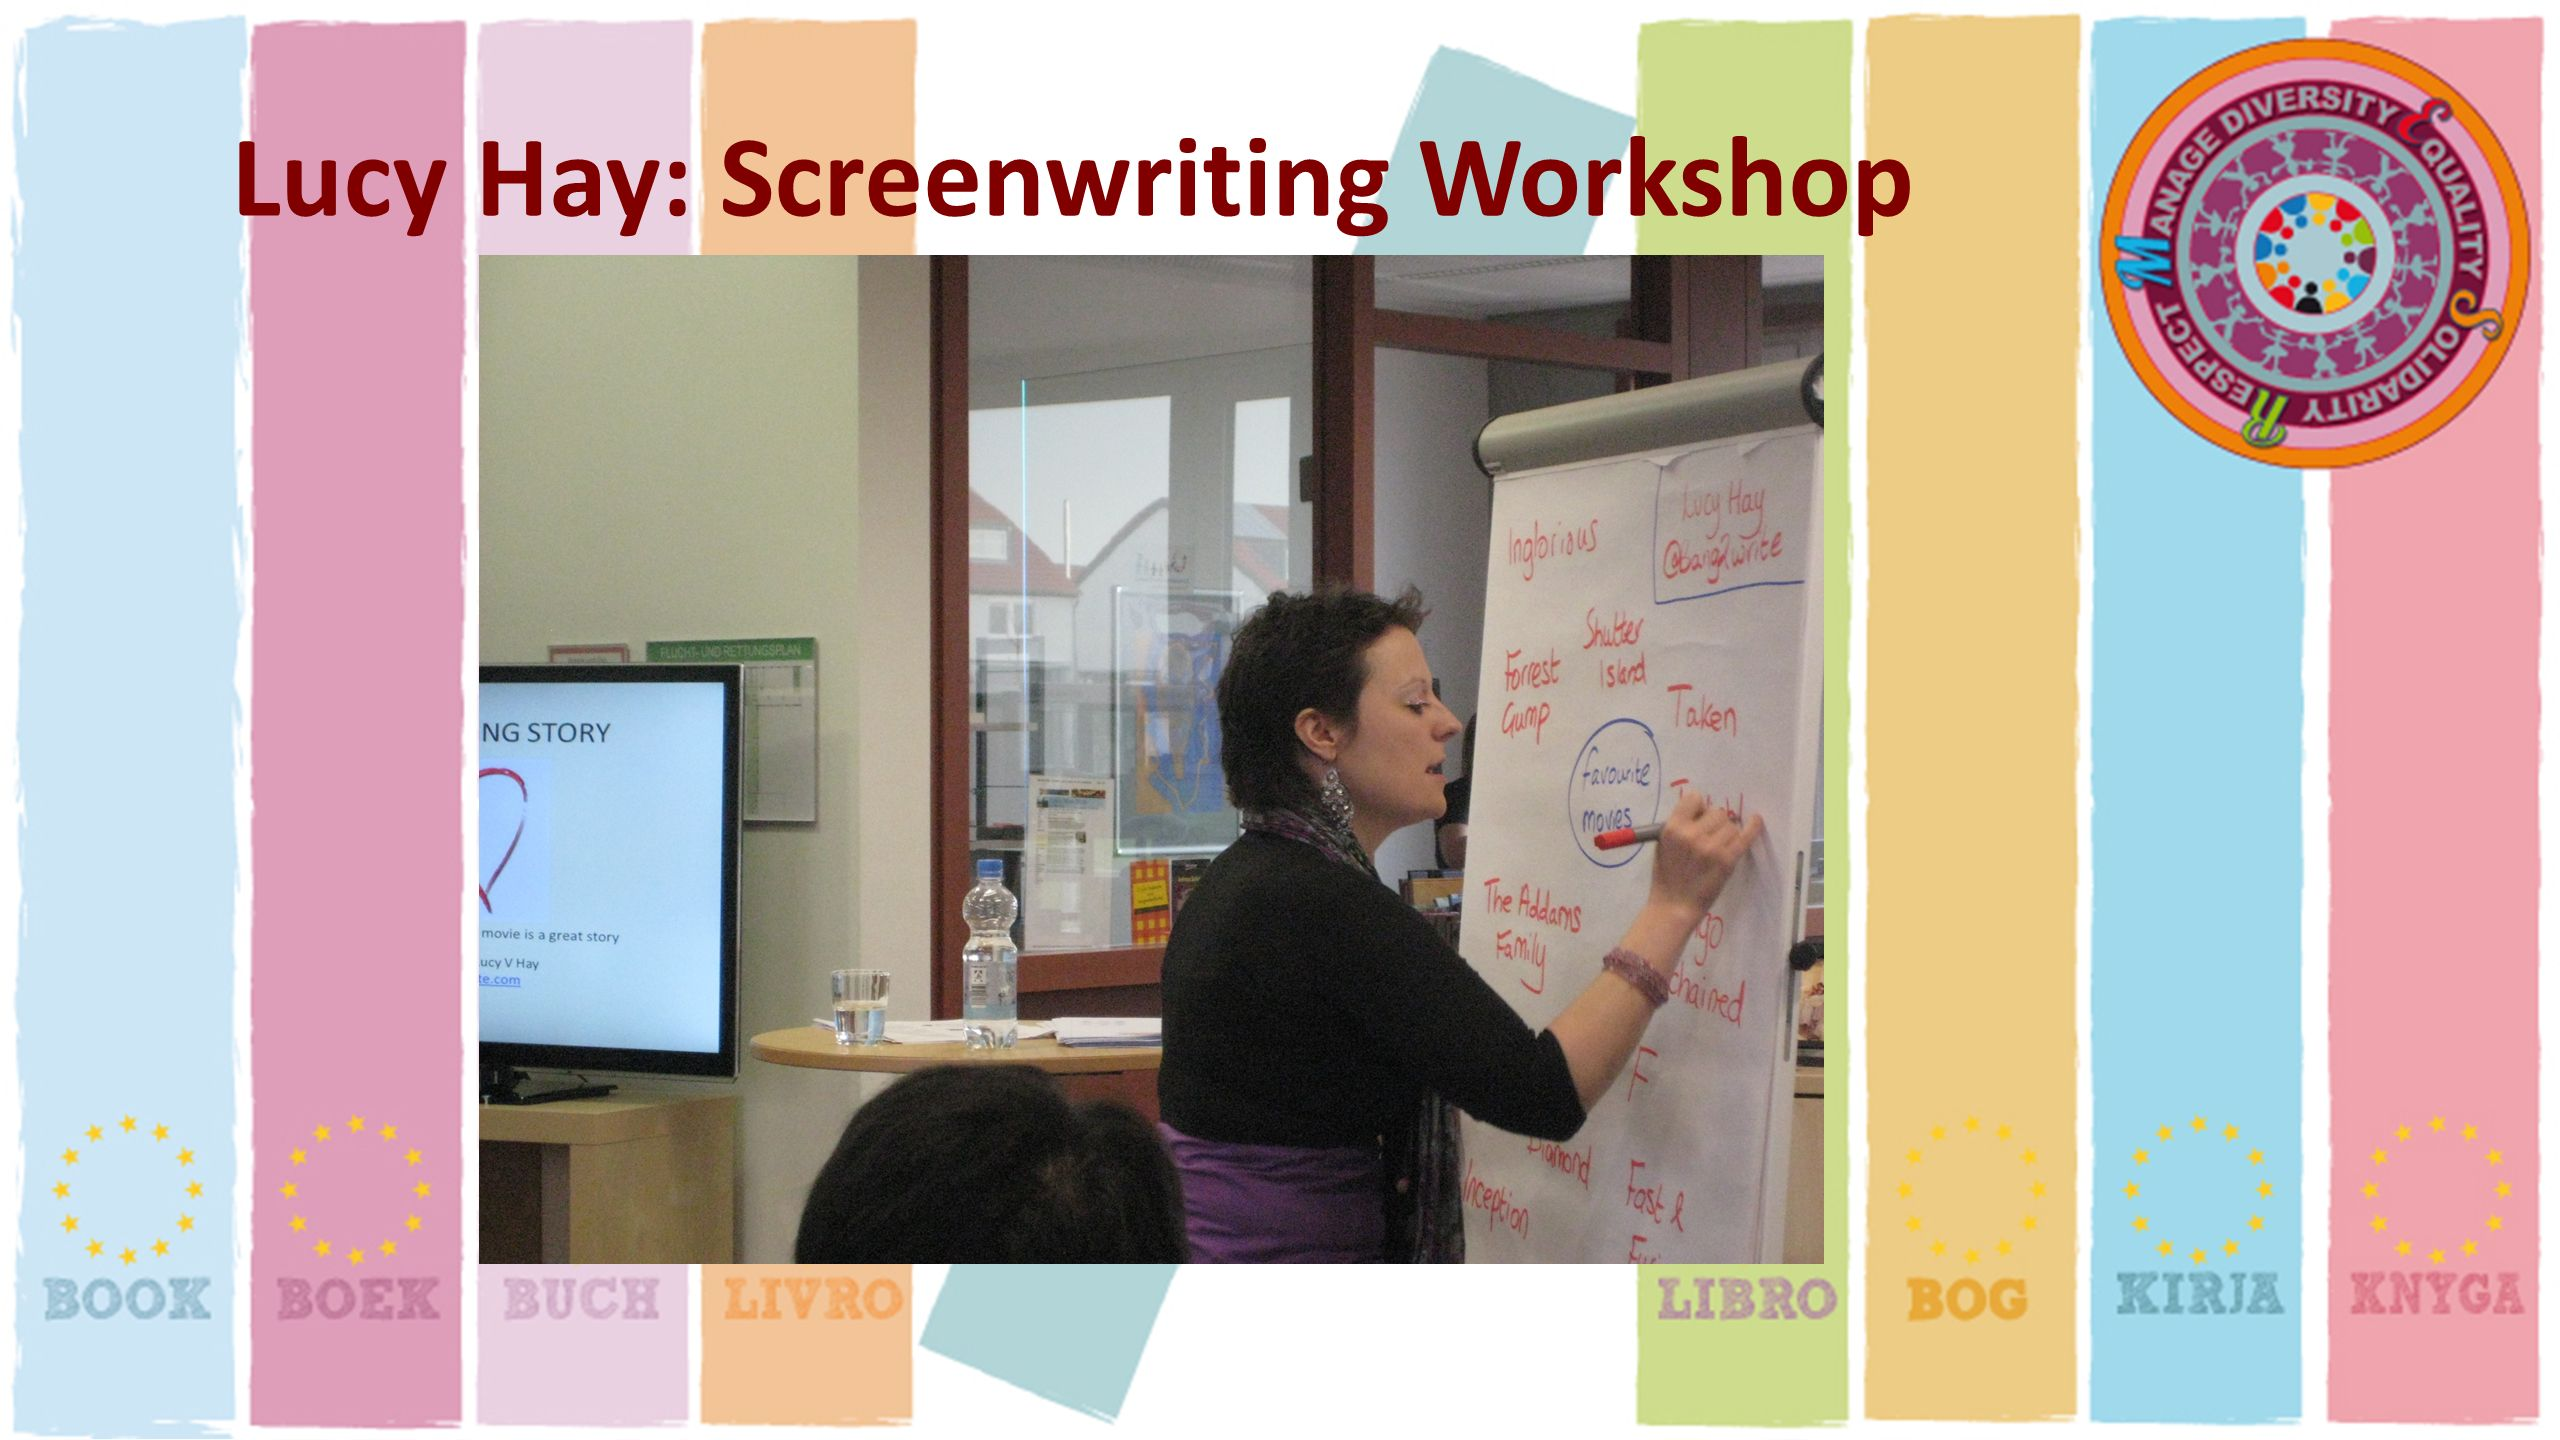 Lucy Hay: Screenwriting Workshop